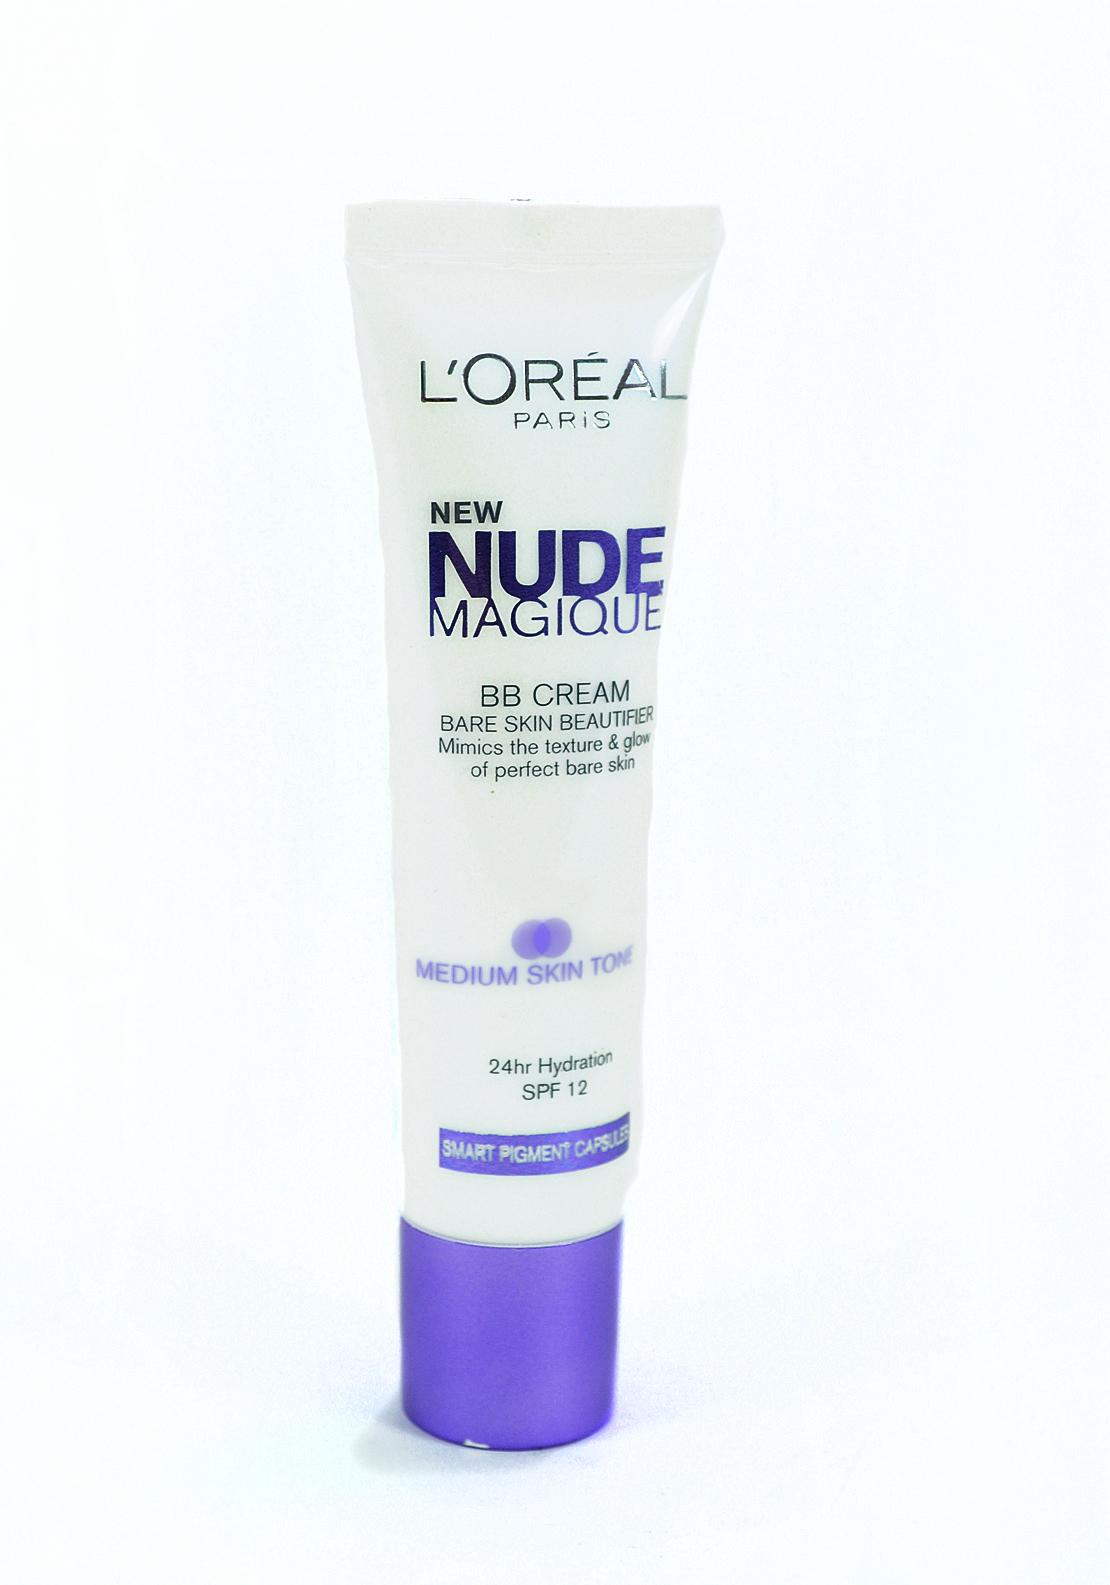 L'Oreal Nude Magique BB Cream, Medium Skin Tone